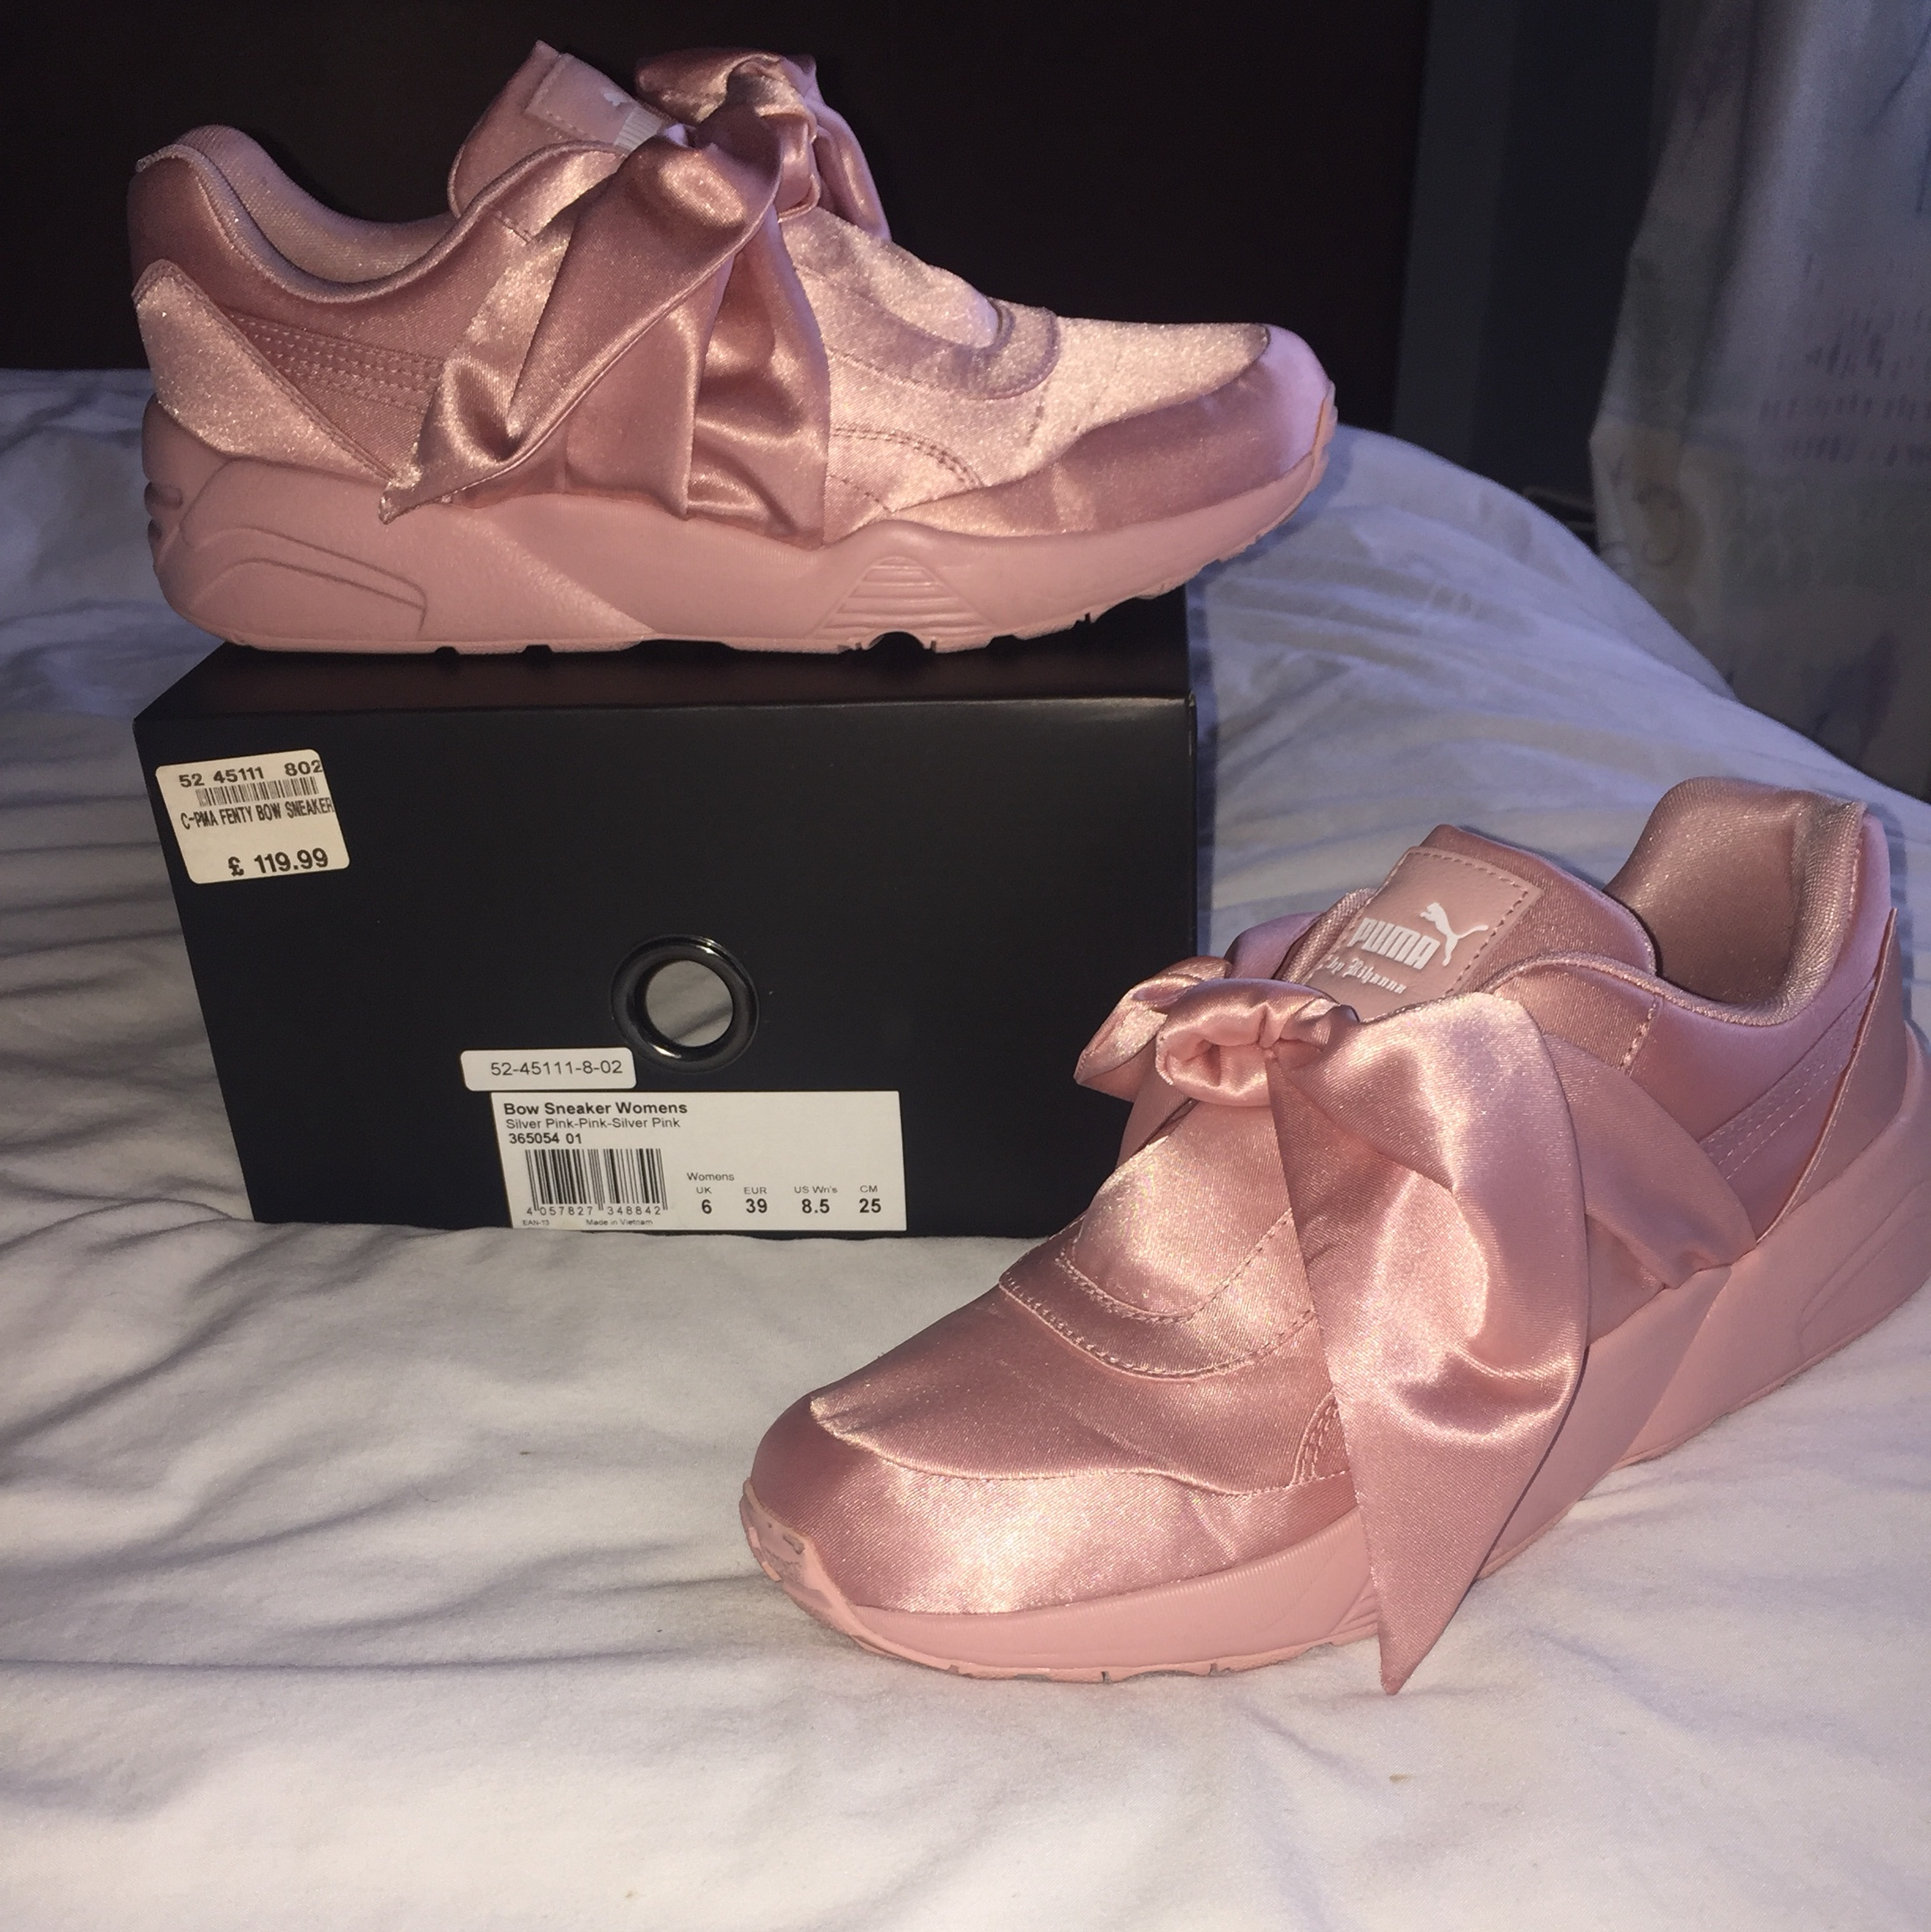 PUMA RIHANNA PINK BOW SNEAKER TRAINER FENTY ALL SIZES UK 3 4 5 NEW